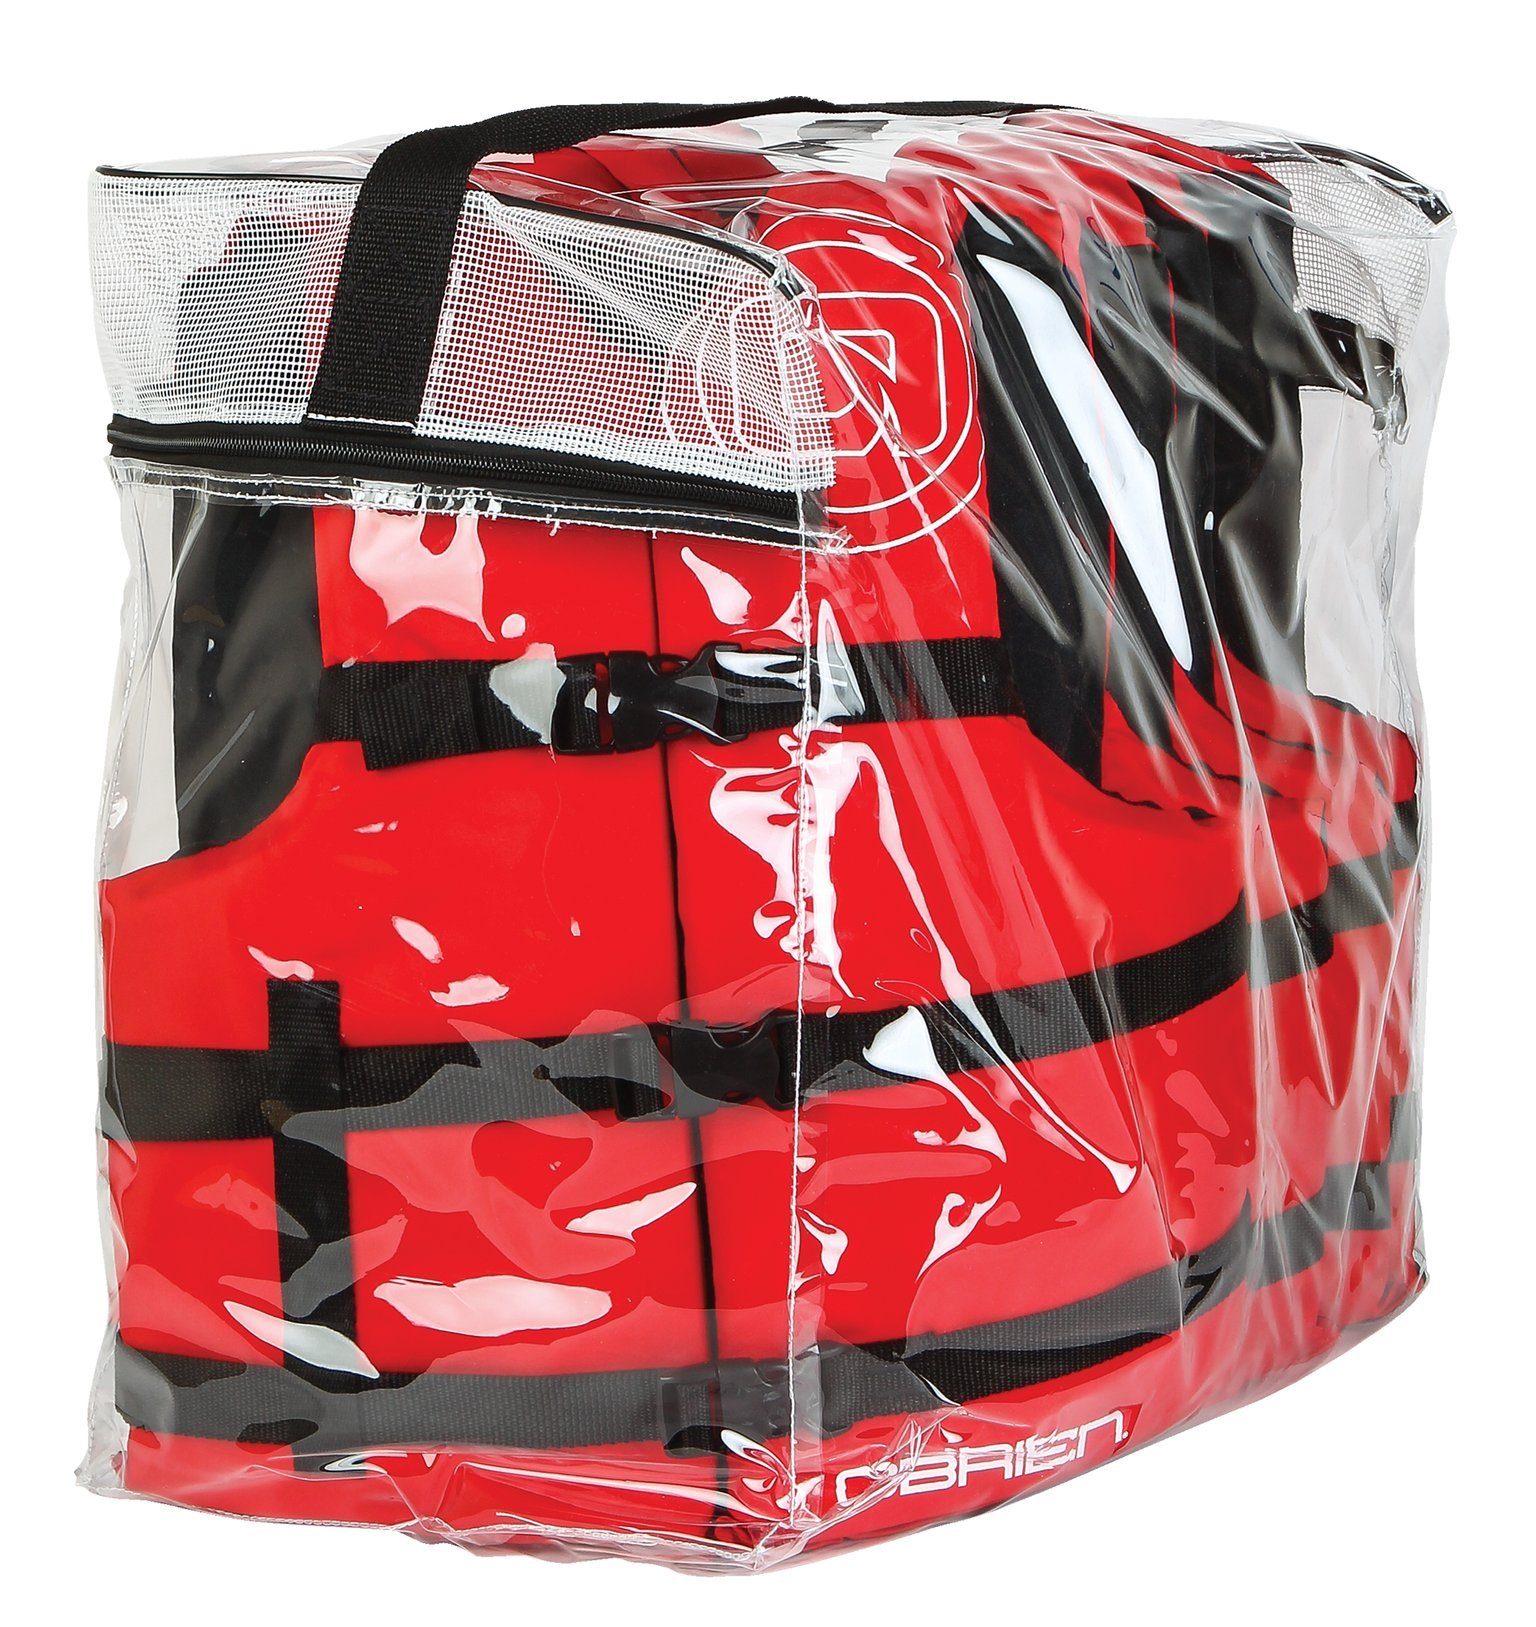 O'Brien Adult 4 Pack Life Vest, Red by O'Brien